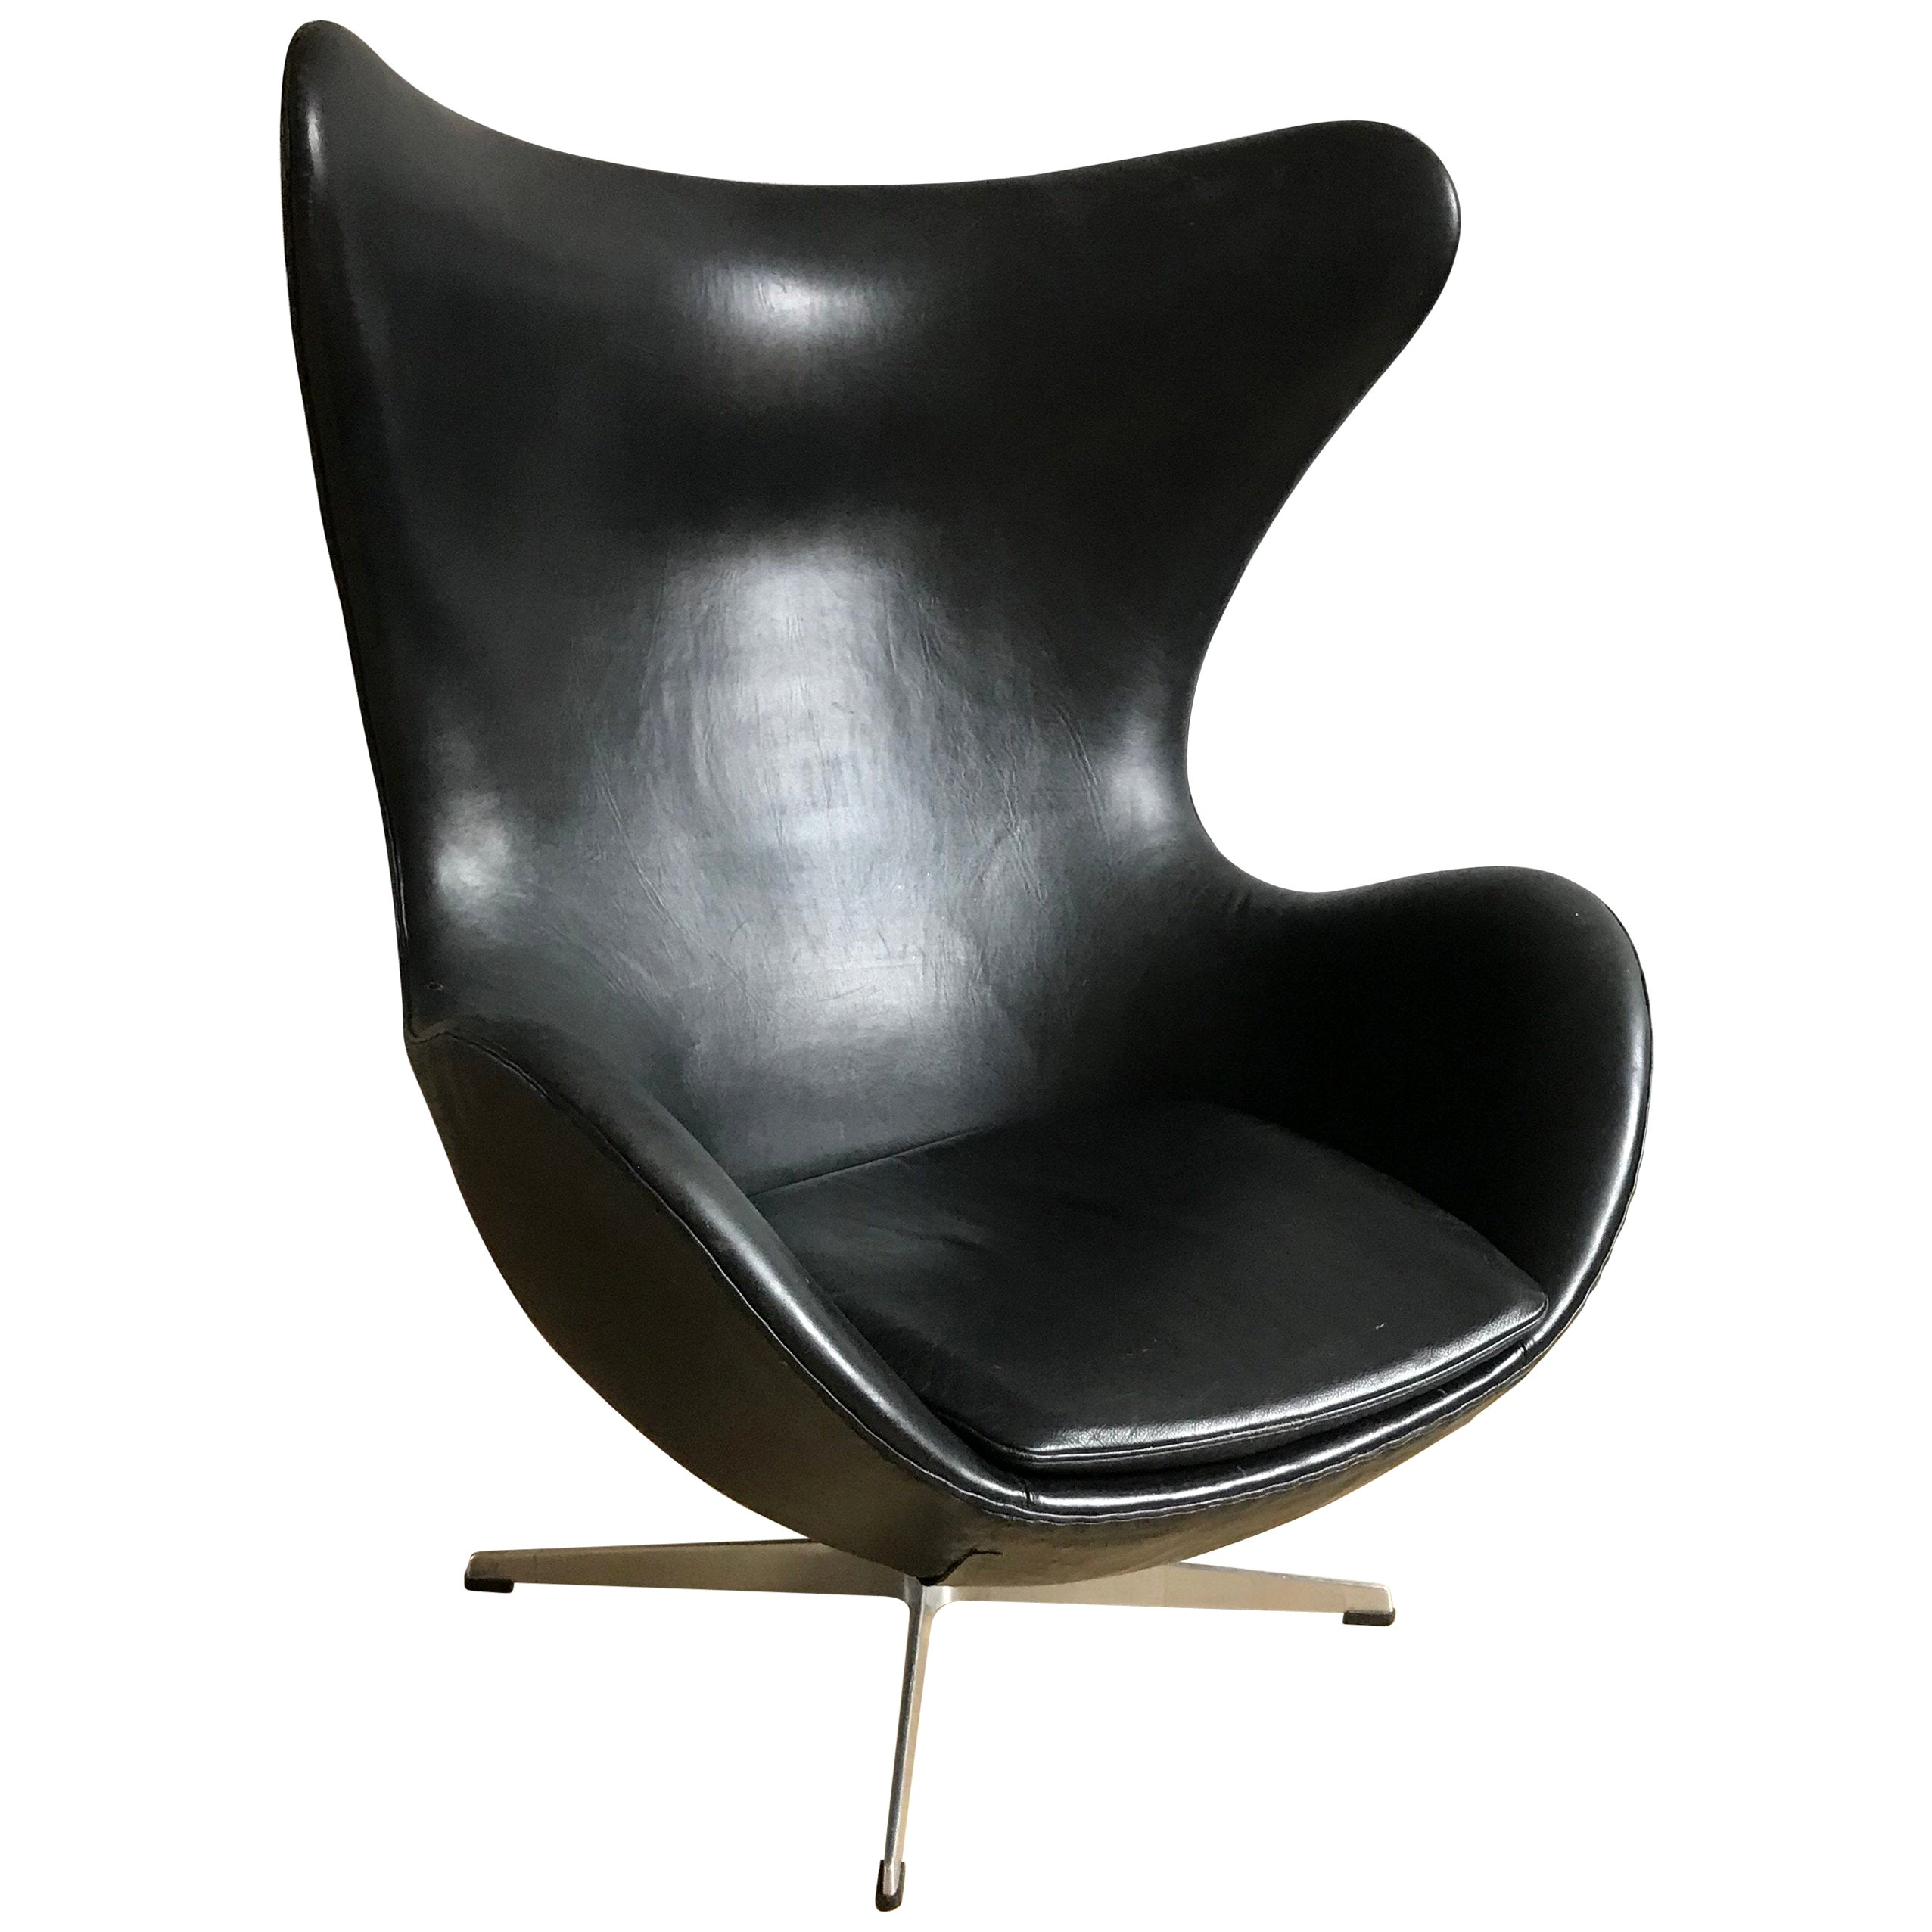 Iconic Vintage Arne Jacobsen 3316 Egg Chair in Black Leather from 1975